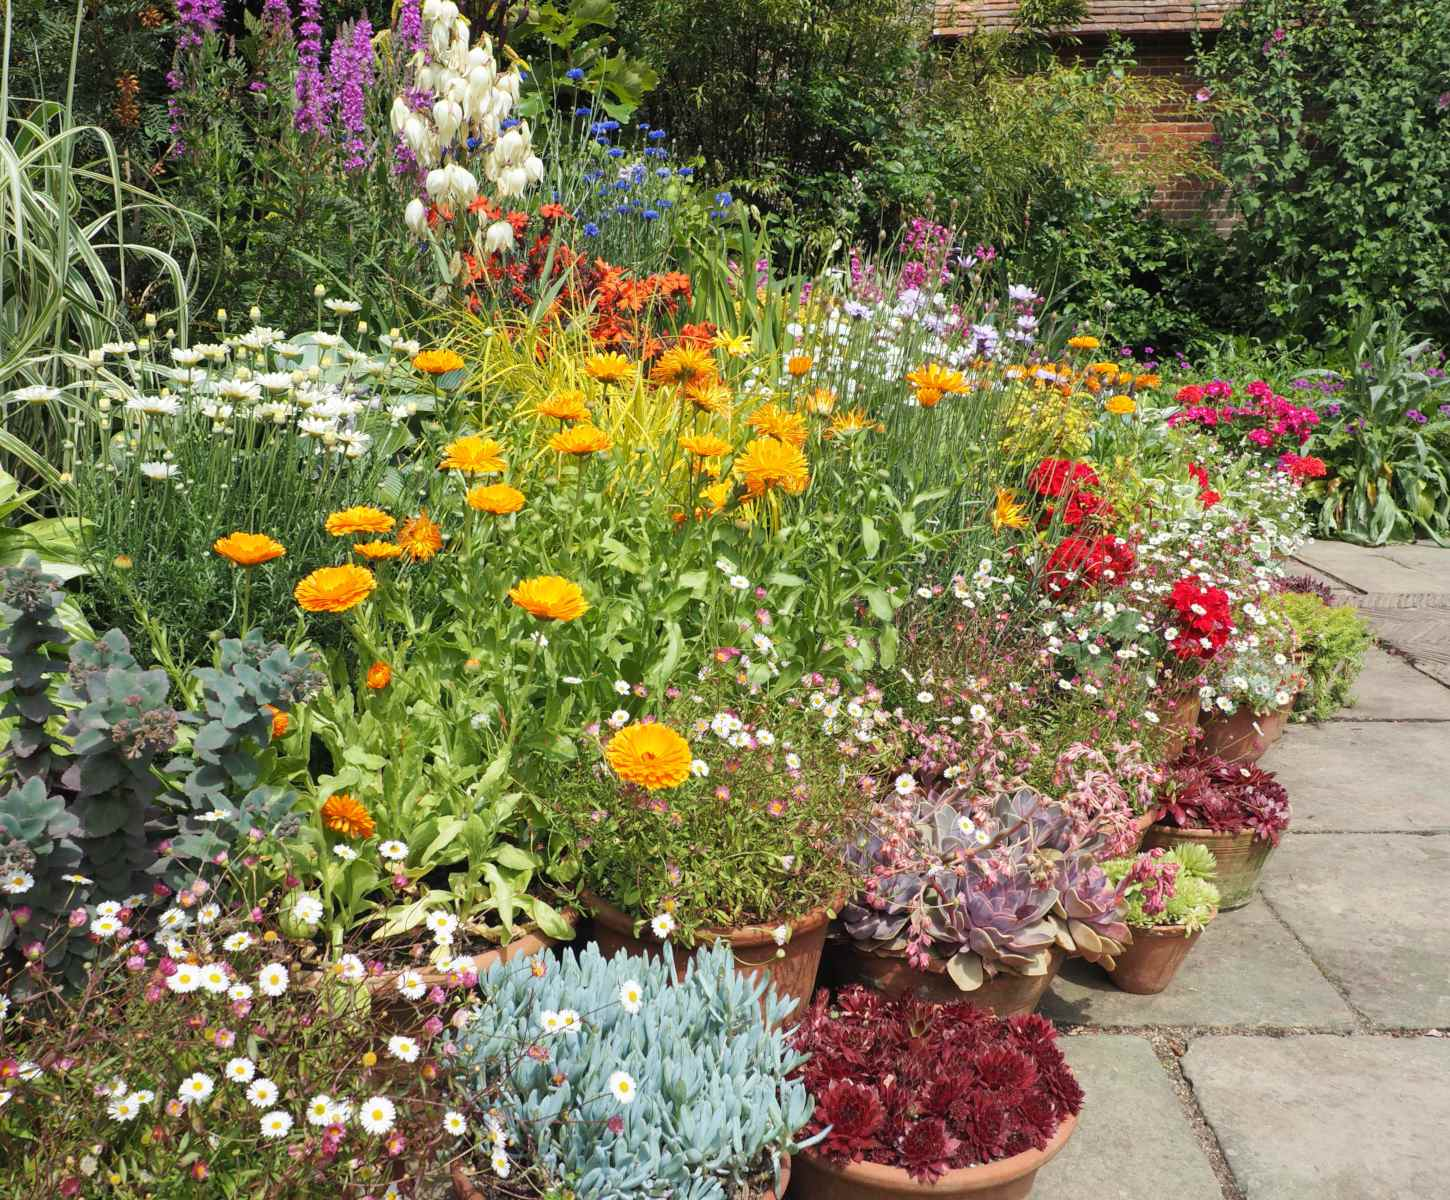 A flower-filled garden bed in July